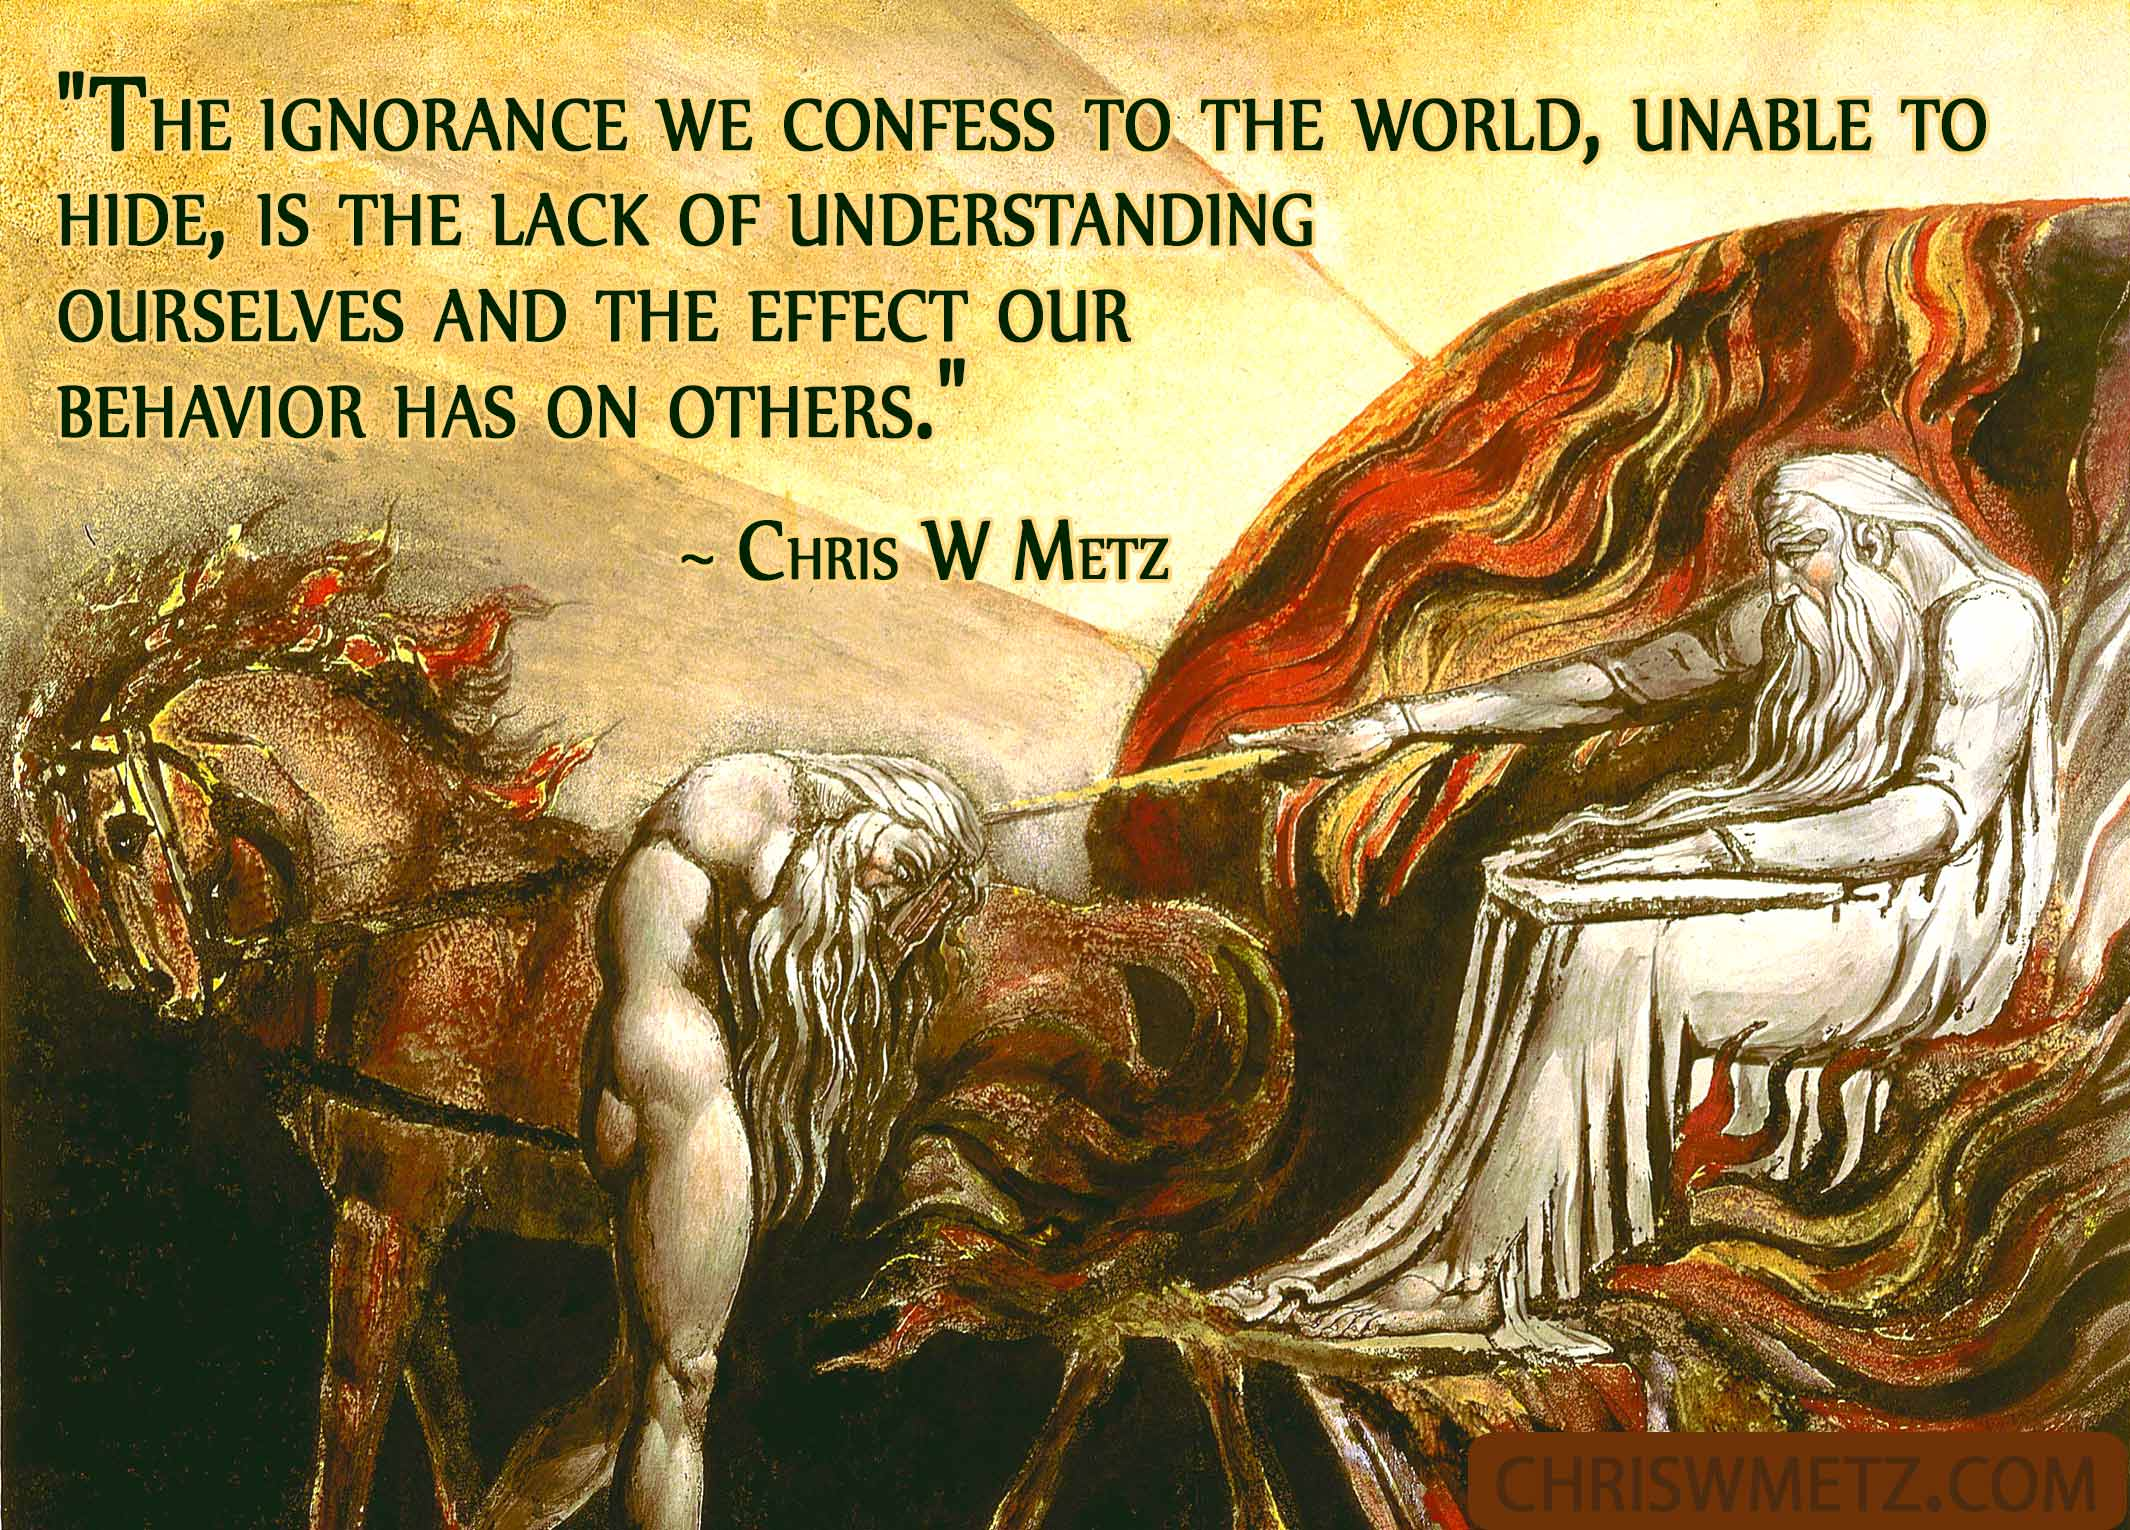 Self Awareness Quote 22 Chris W Metz understanding consciousness